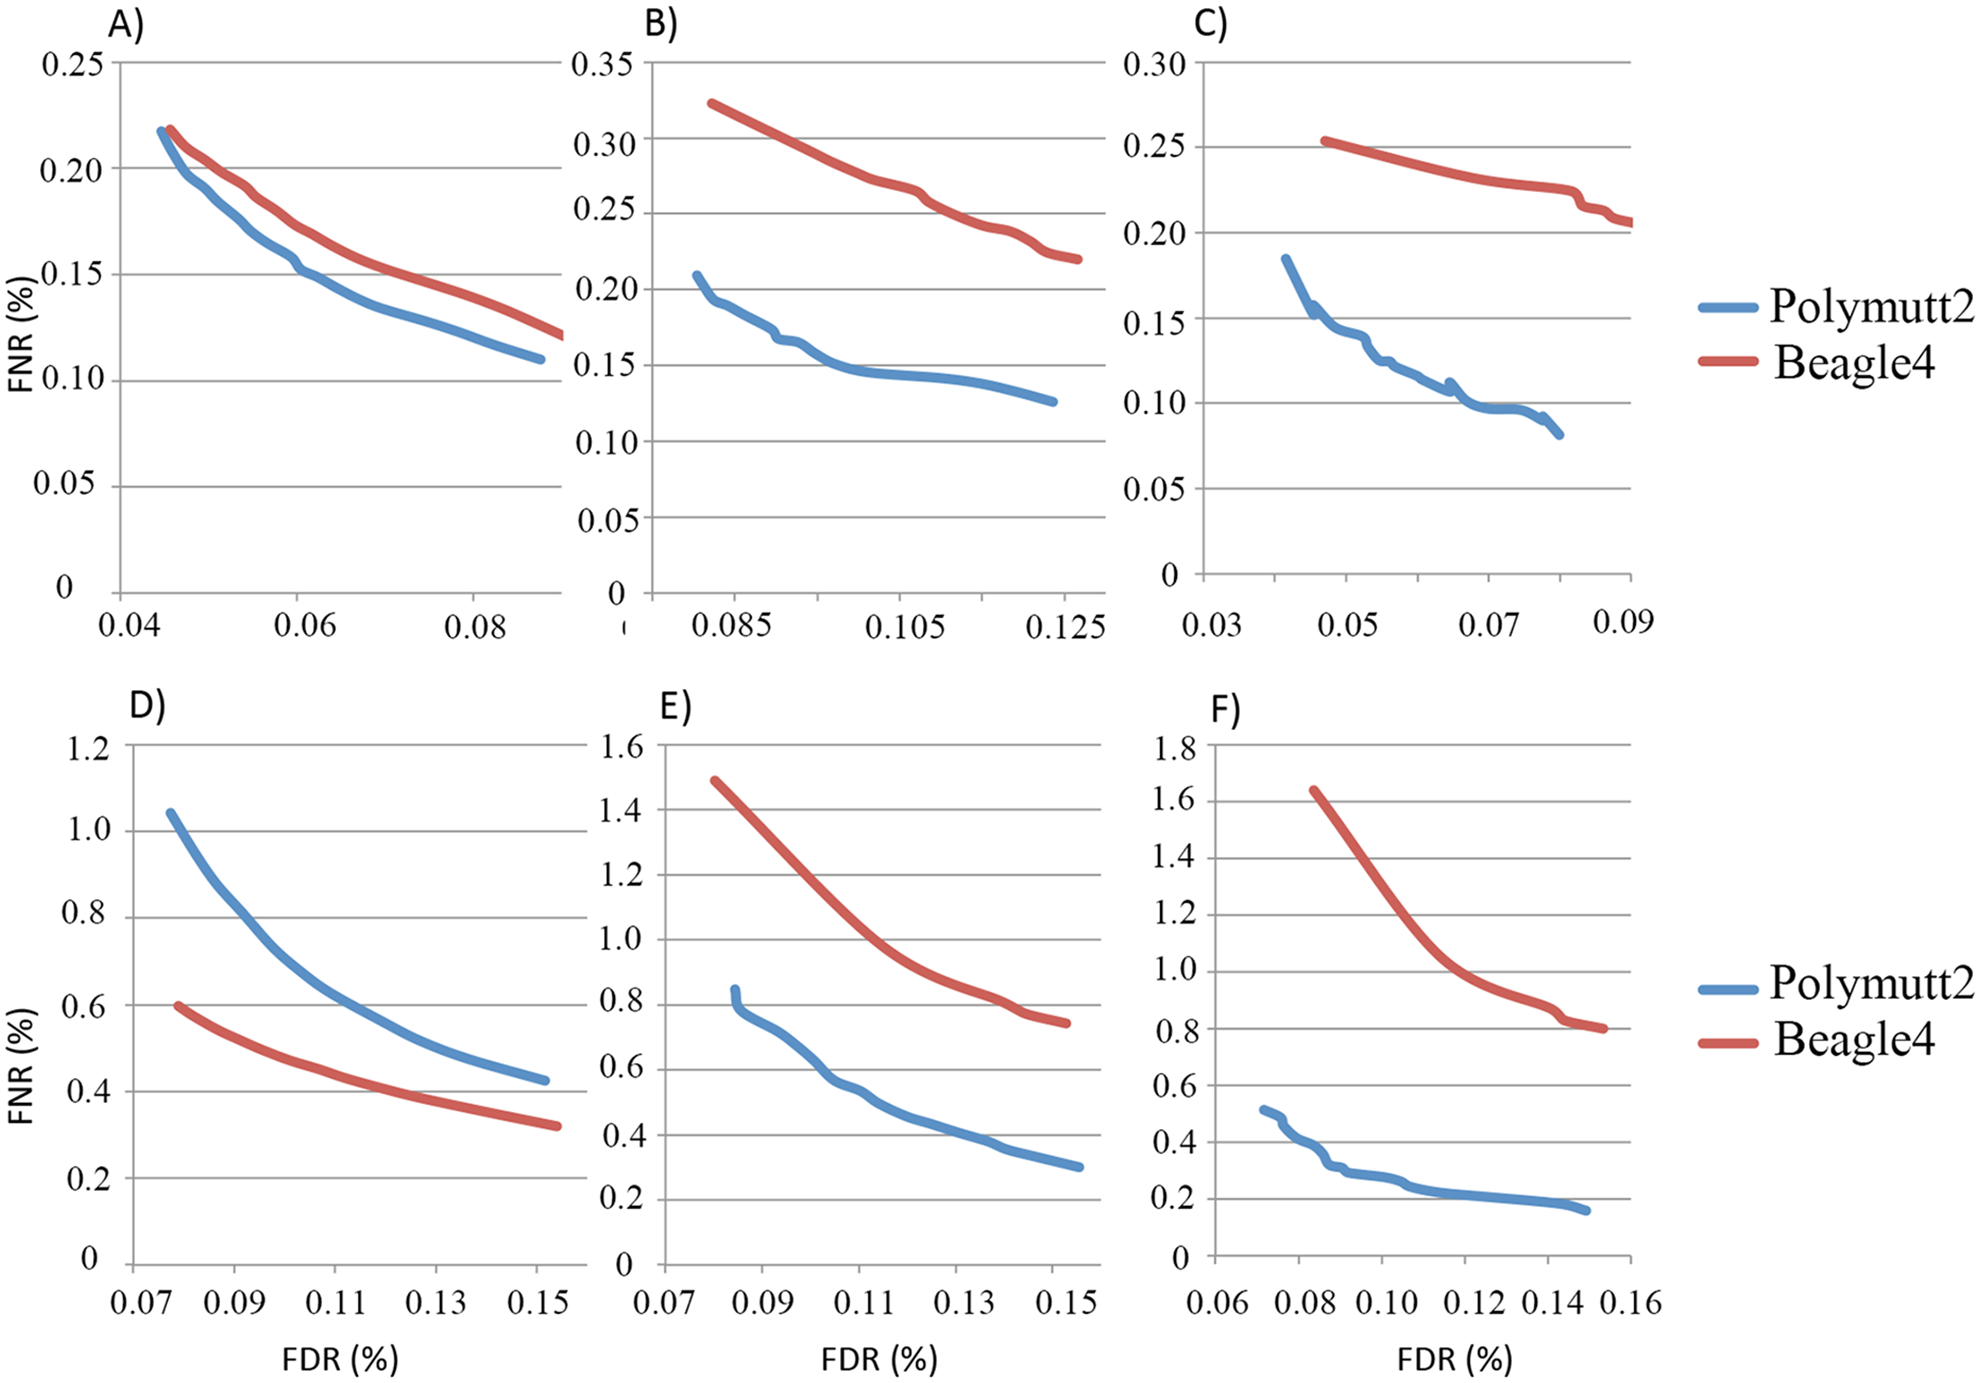 FNR (%) vs. FDR (%) curves of the overall genotypes of Polymutt2 and Beagle4 calls when 30% (~15X, panel A, B and C) or when 15% (~7.5X, panel D, E and F) of the original data were used for genotype calling.